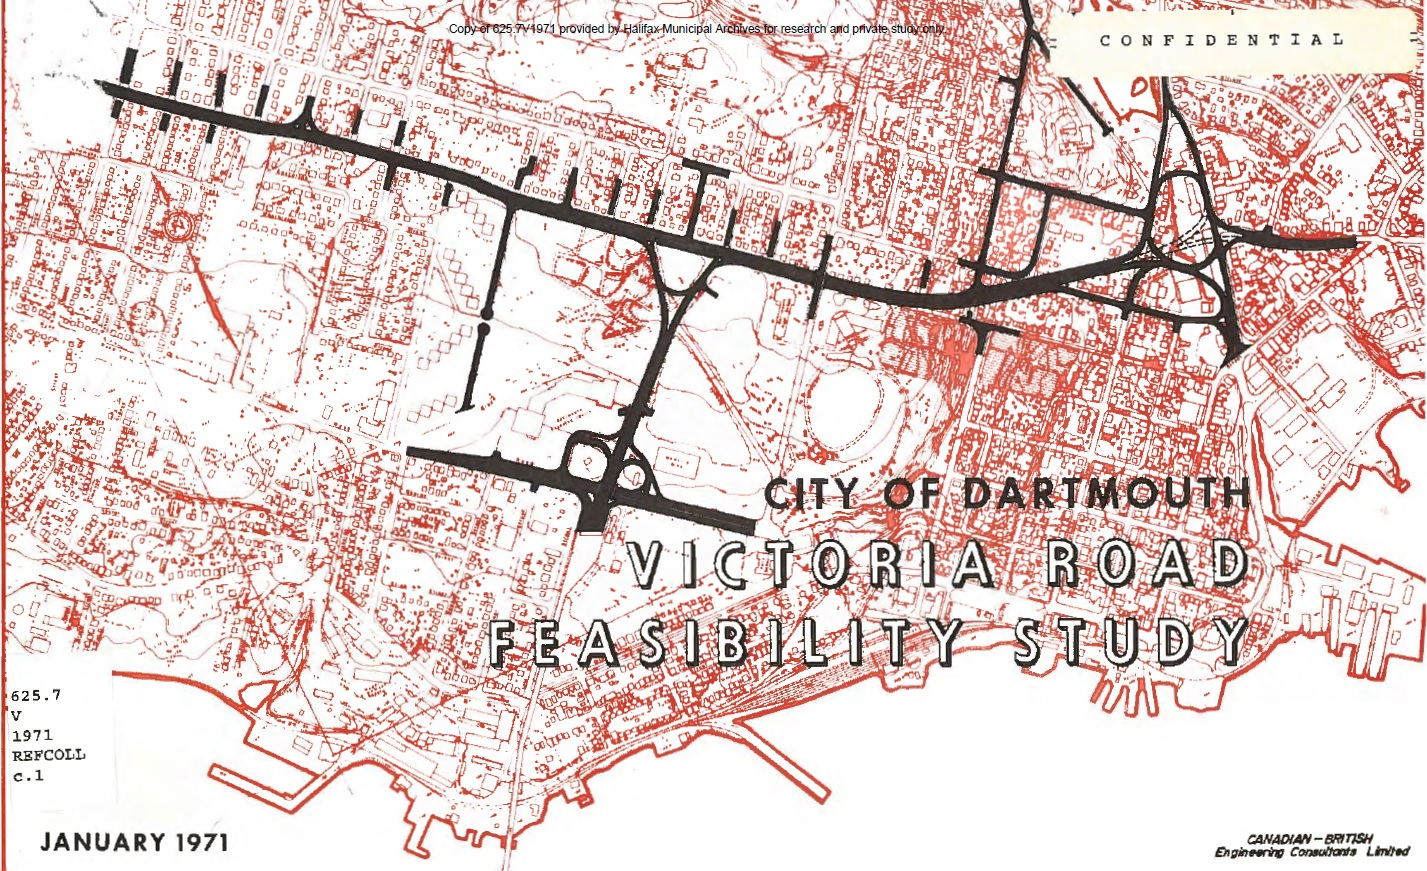 Redesigning prince albert road sam austin imagine victoria road as a sunken expressway cutting across dartmouth demolishing half of the flower streets an overpass at thistle street pooptronica Image collections